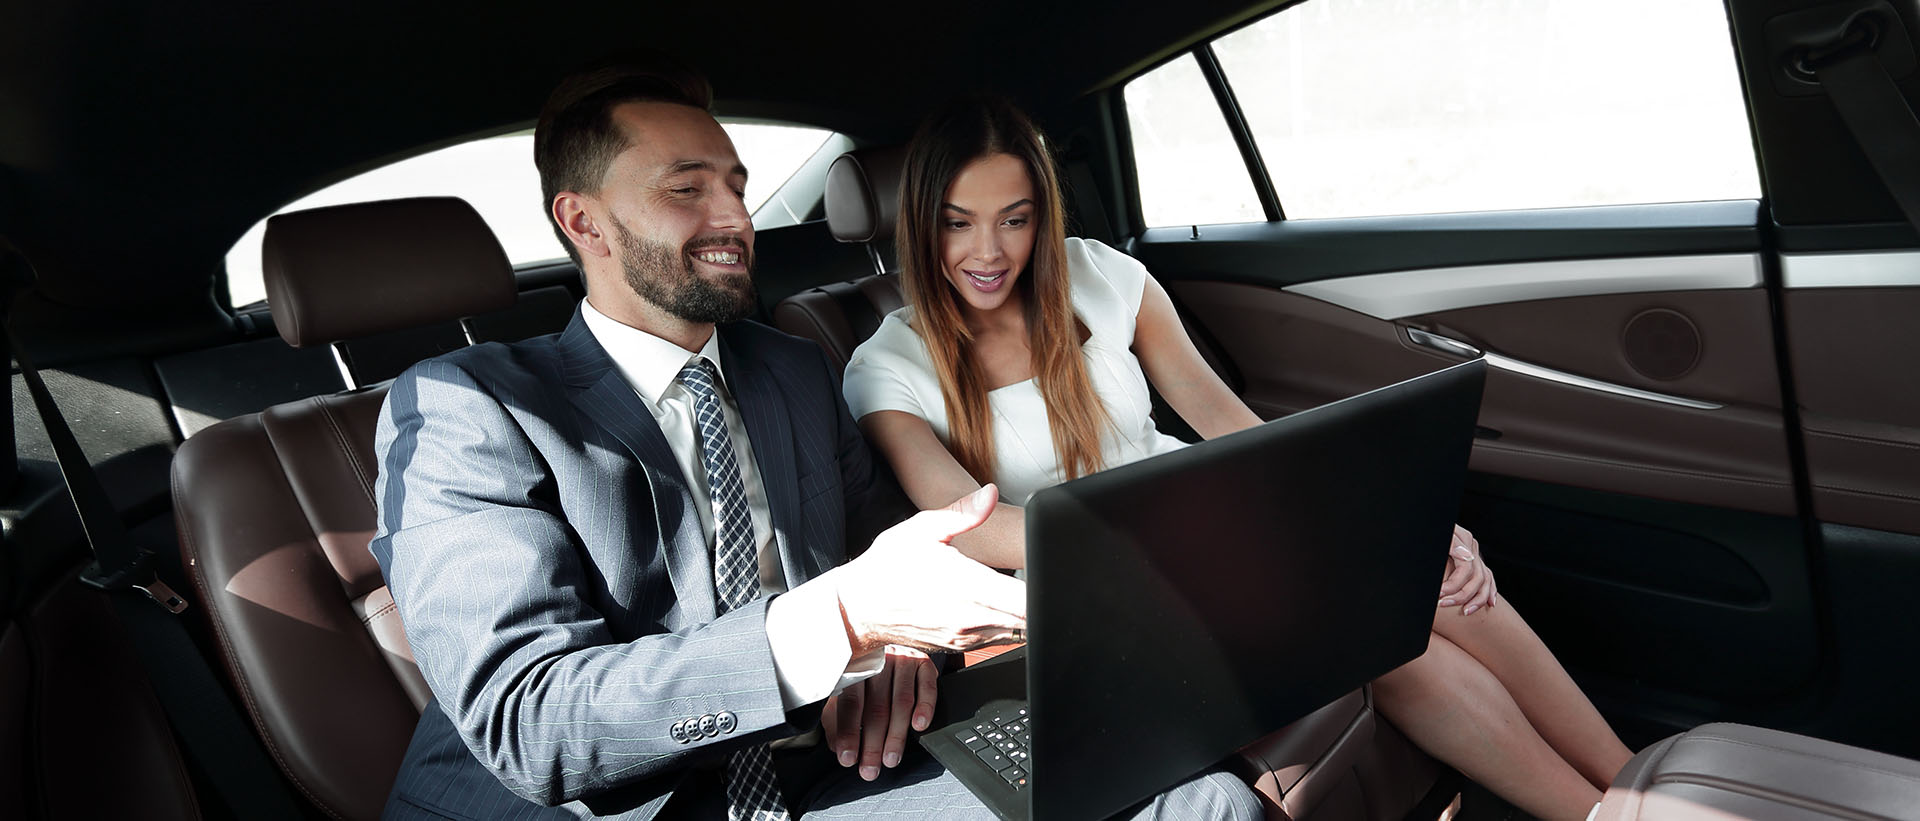 a man and a woman inside a car working on a laptop computer